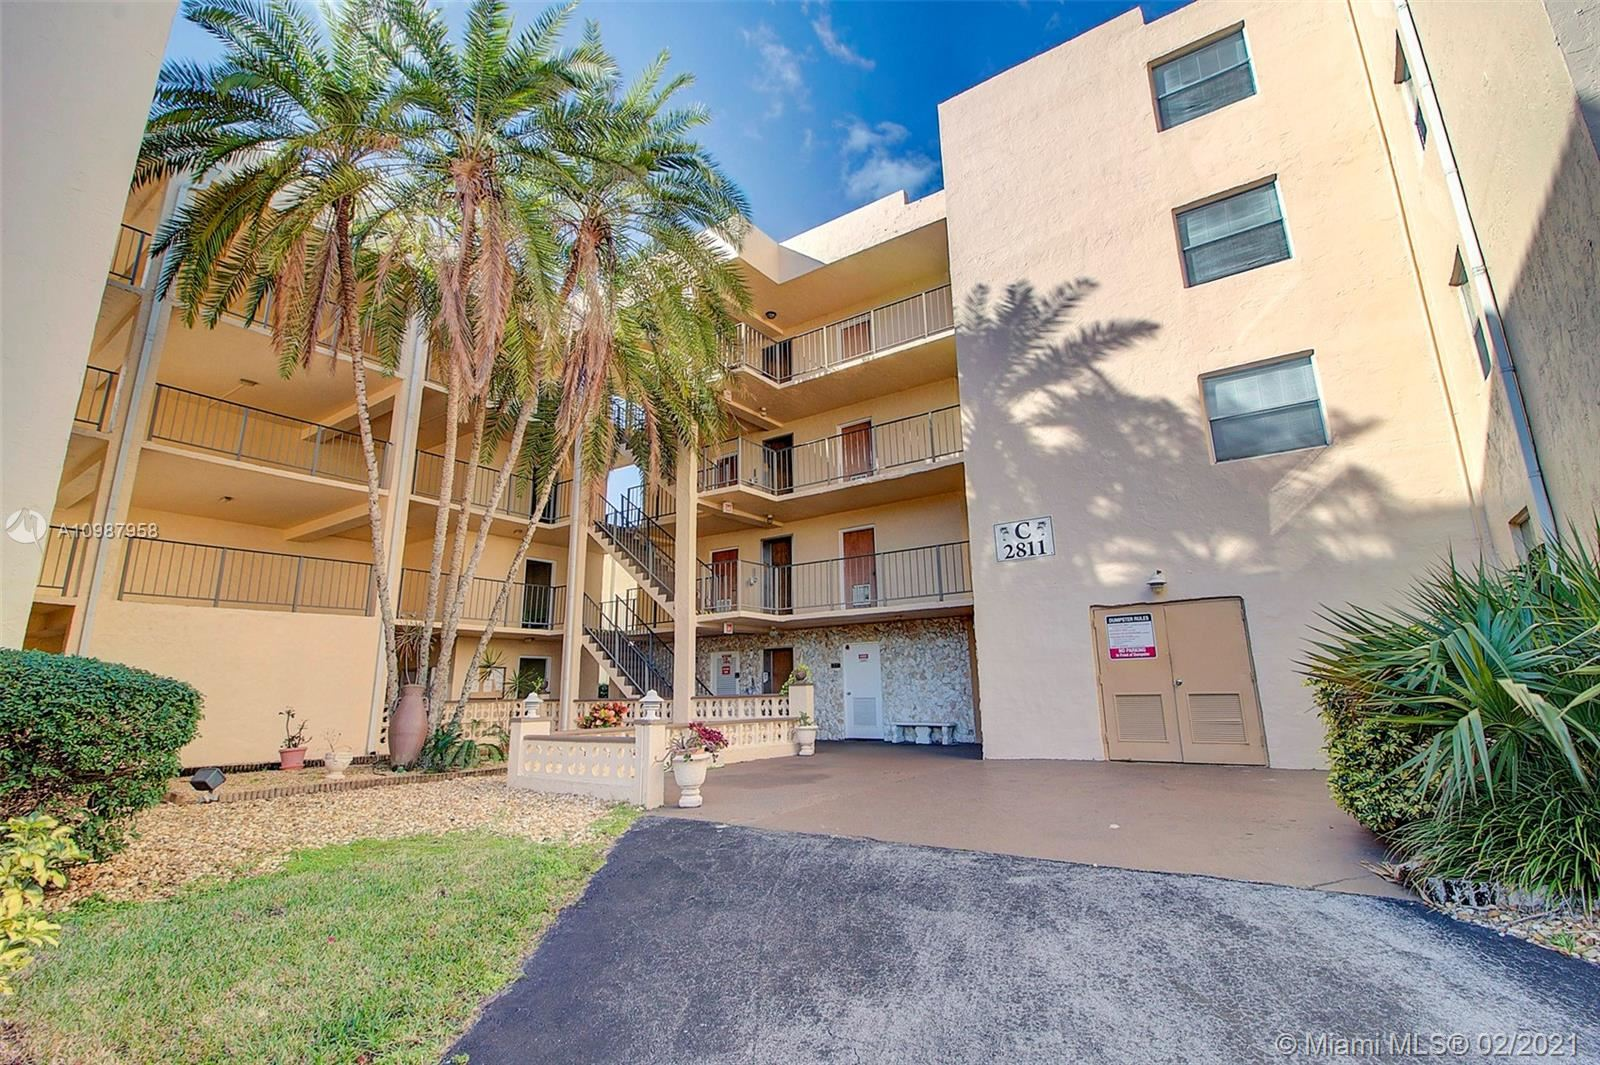 2811 Somerset Dr #301, Lauderdale Lakes, FL 33311 - #: A10987958